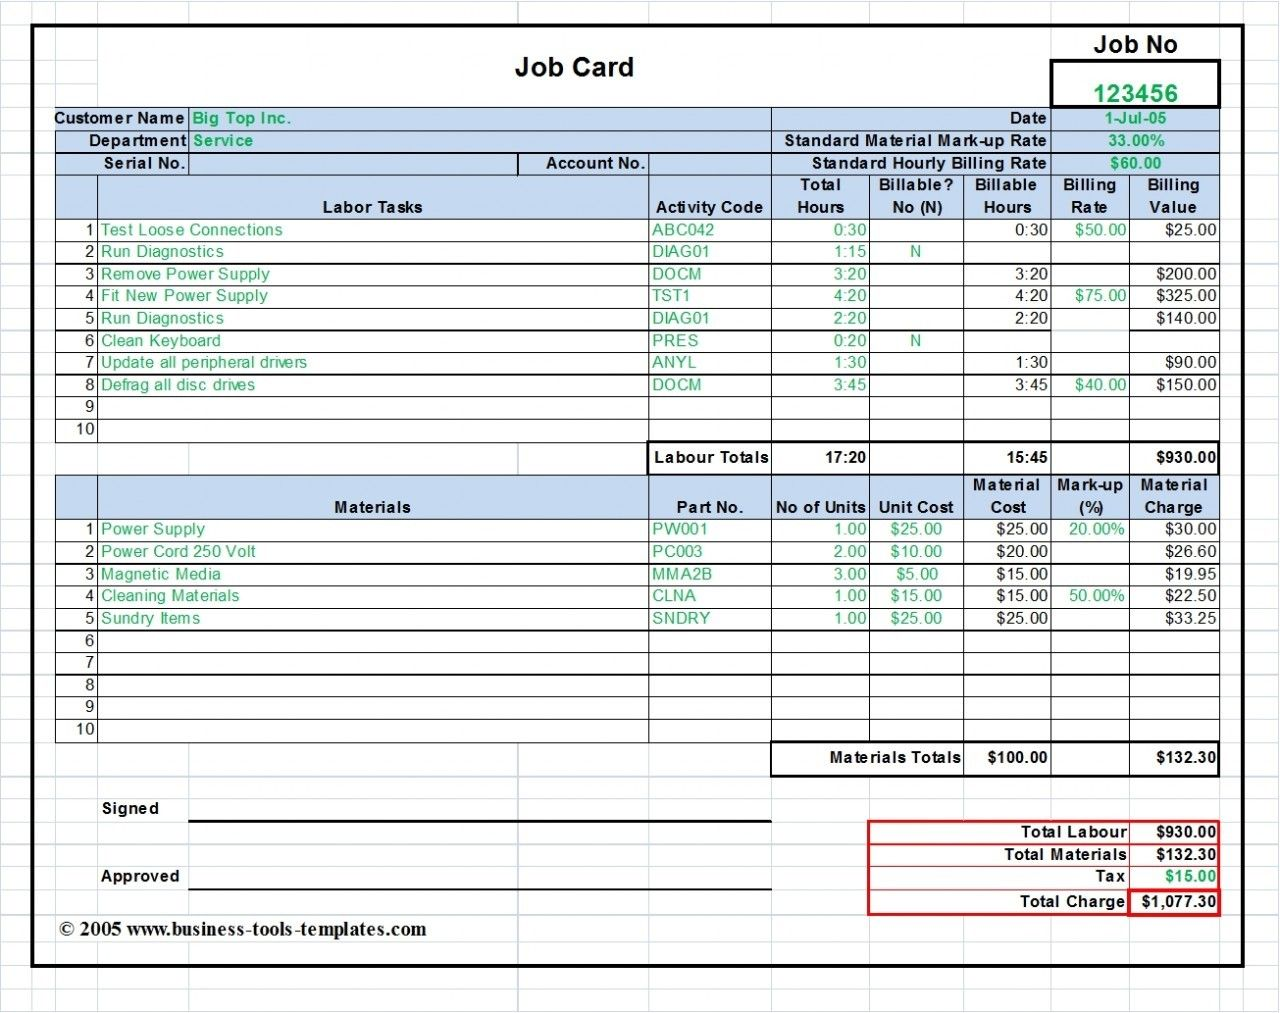 Workshop Job Card Labor Amp Material Cost Estimator